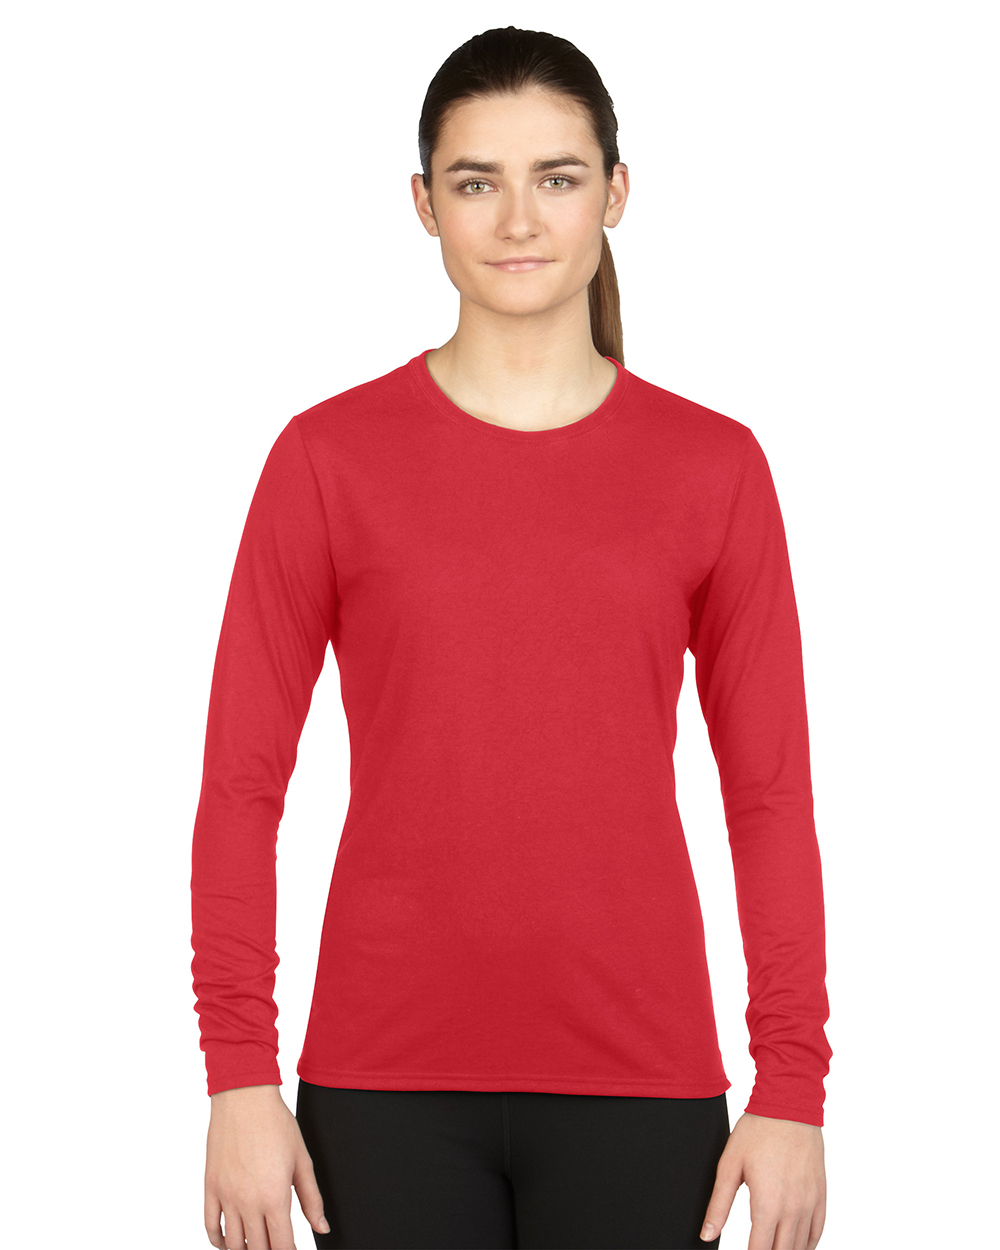 Gildan 42400L     Ladies Long Sleeve Performance     4.5 oz. 100% Polyester( Cotton Feel)